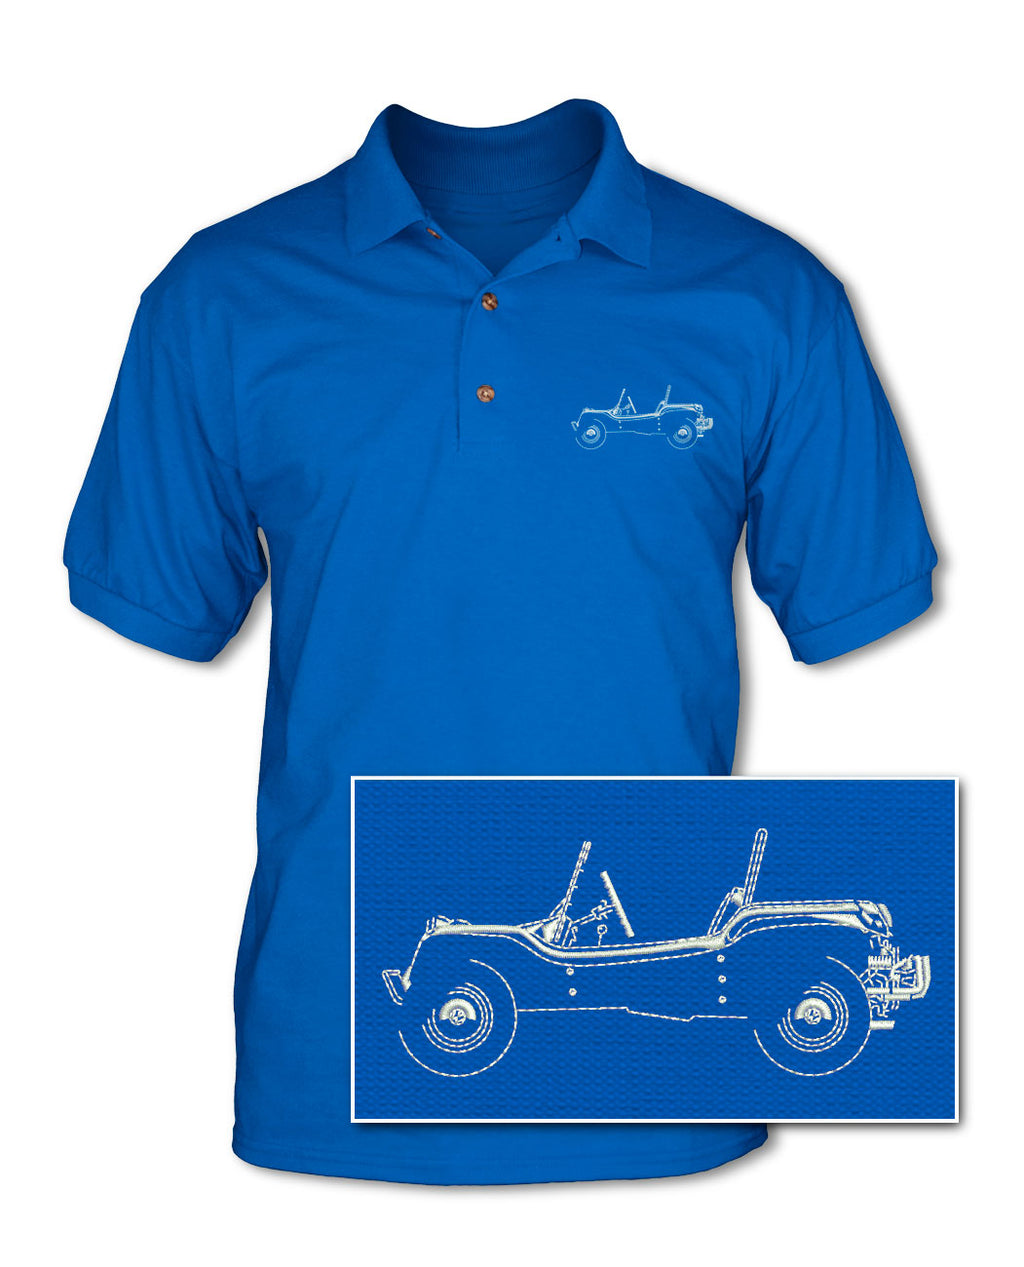 1964 Meyers Manx Buggy VW Adult Pique Polo Shirt - Side View